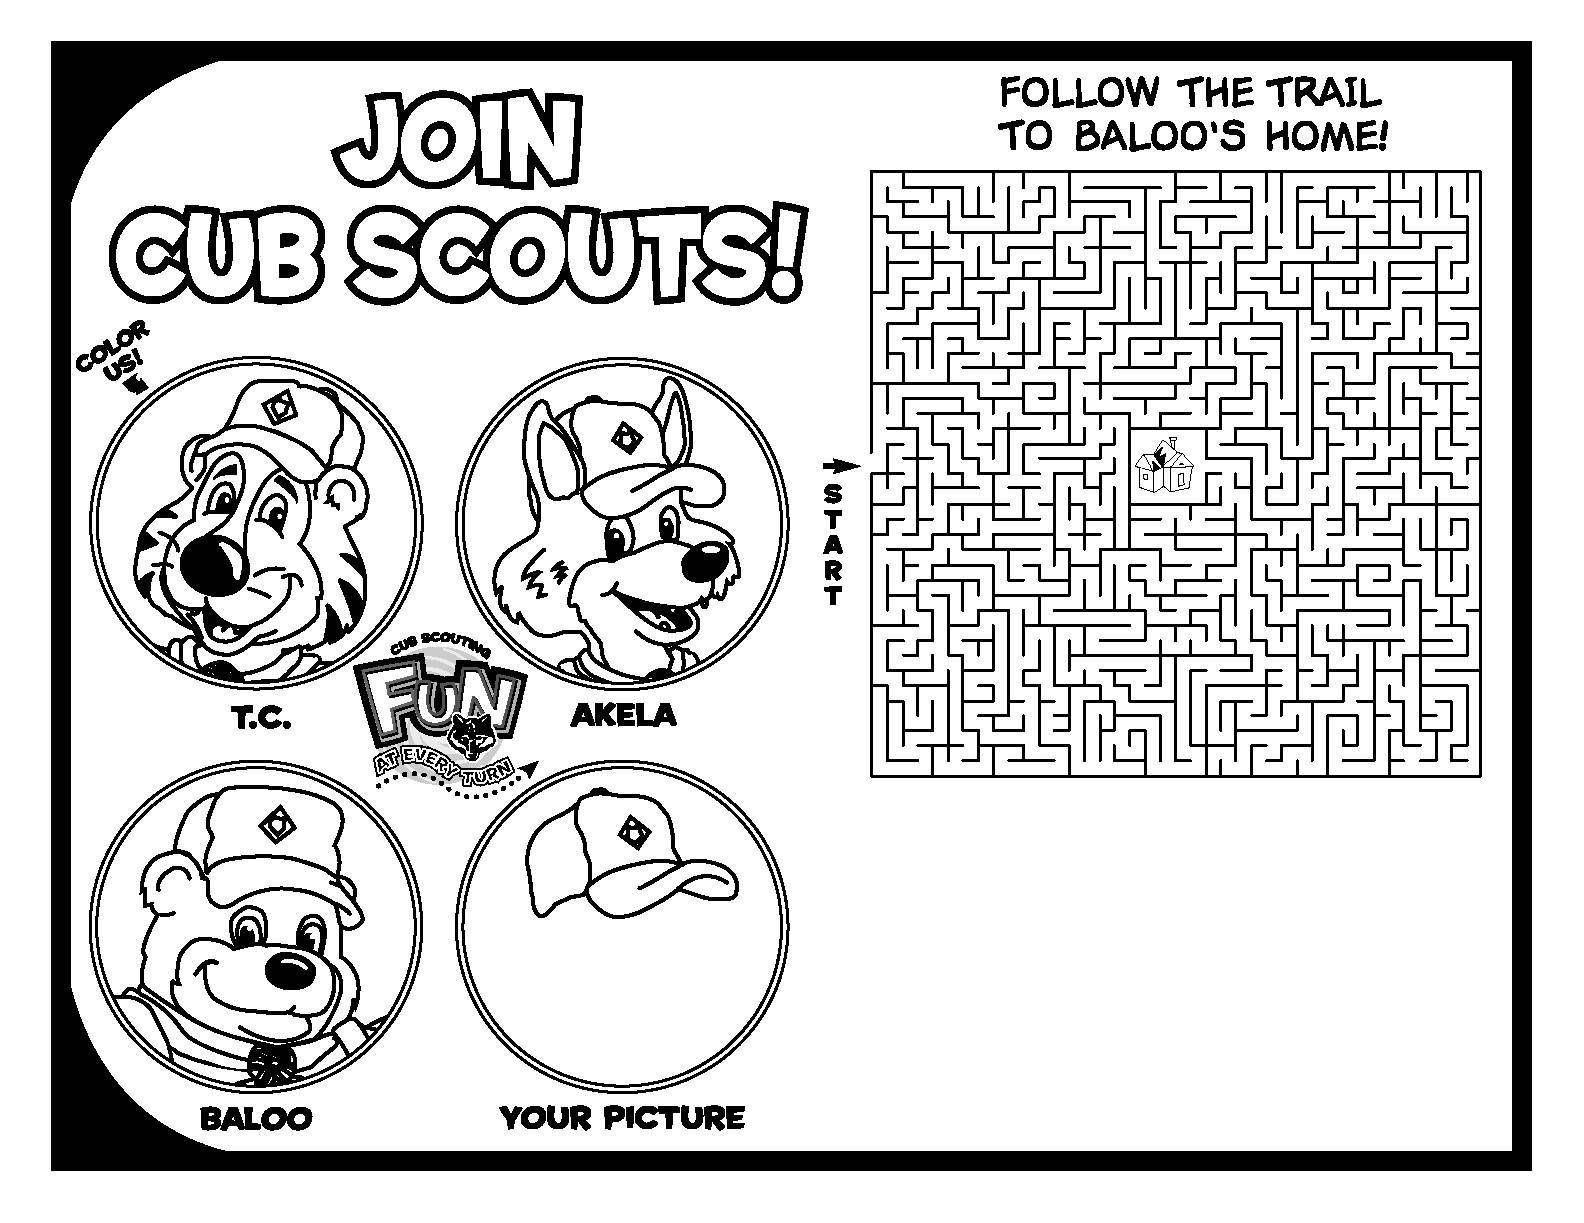 Pin On Cub Scout Printables